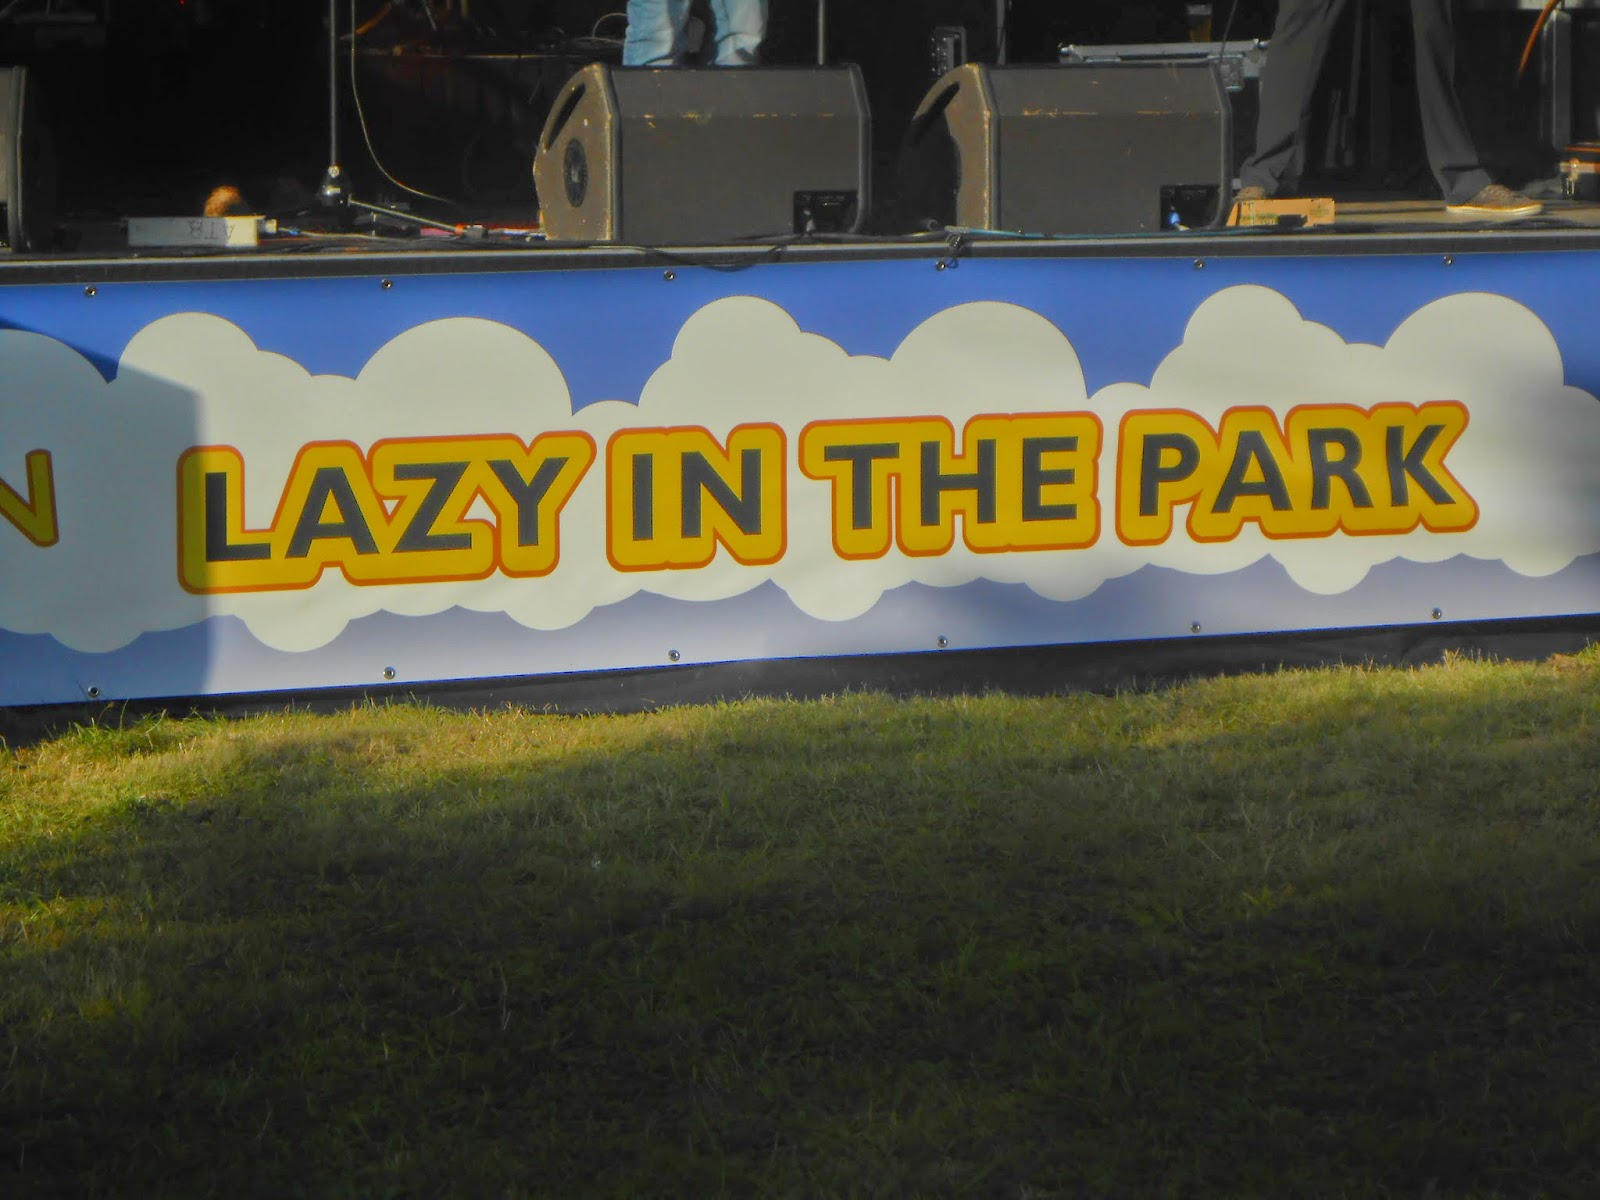 Lazy in the park Festival 2014